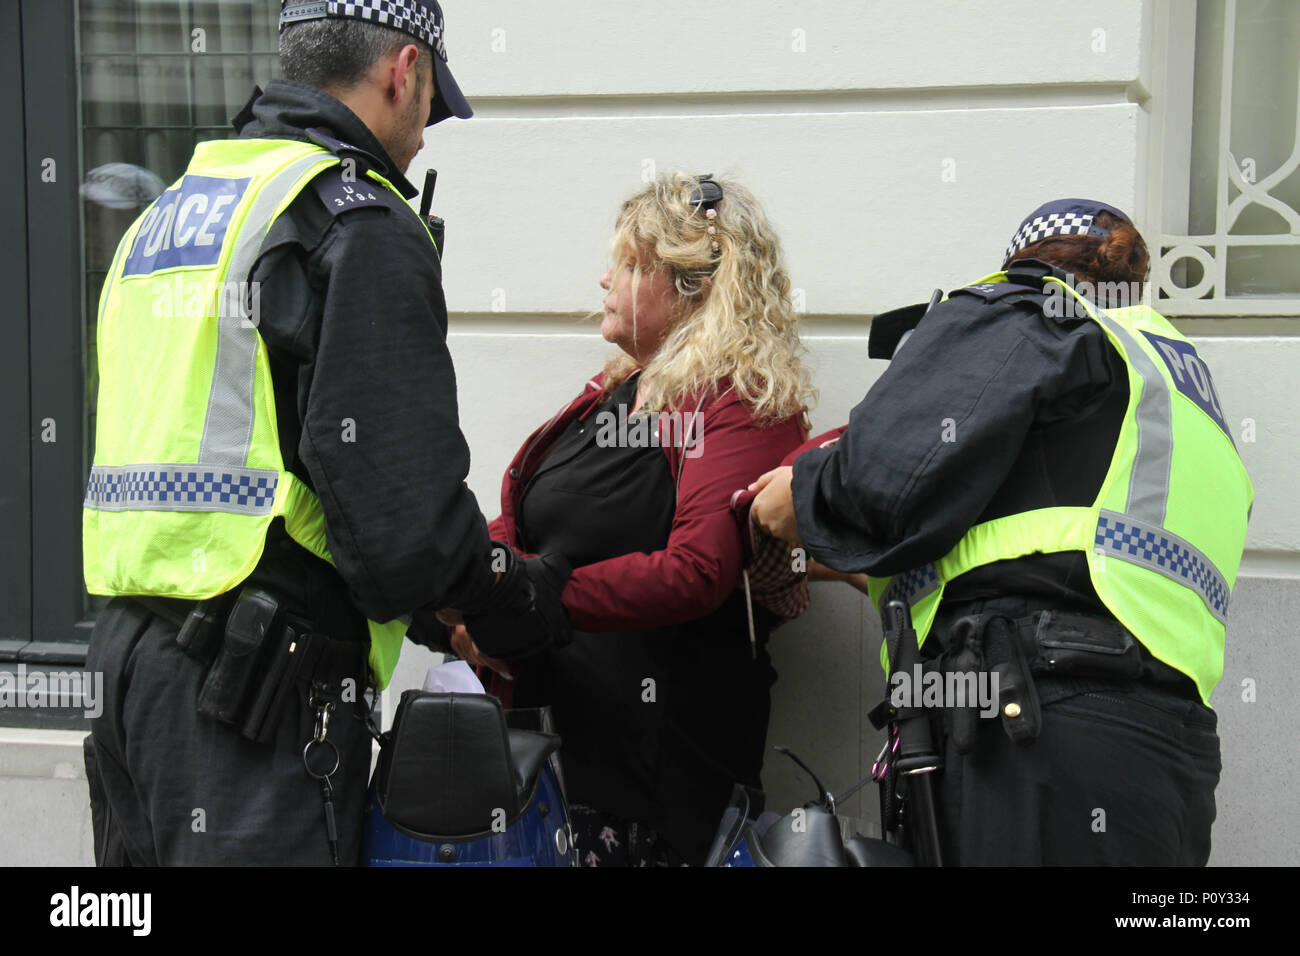 London, UK - 10 June 2018: A woman is searched and questioned by police officers during the demonstration outside the Saudi Arabia Embassy for Al Quds Day on 10 June 2018. The annual event held on the last Friday of Ramadan that was initiated in 1979 to express support for the Palestinians and oppose Zionism and Israel. Credit: David Mbiyu - Stock Image